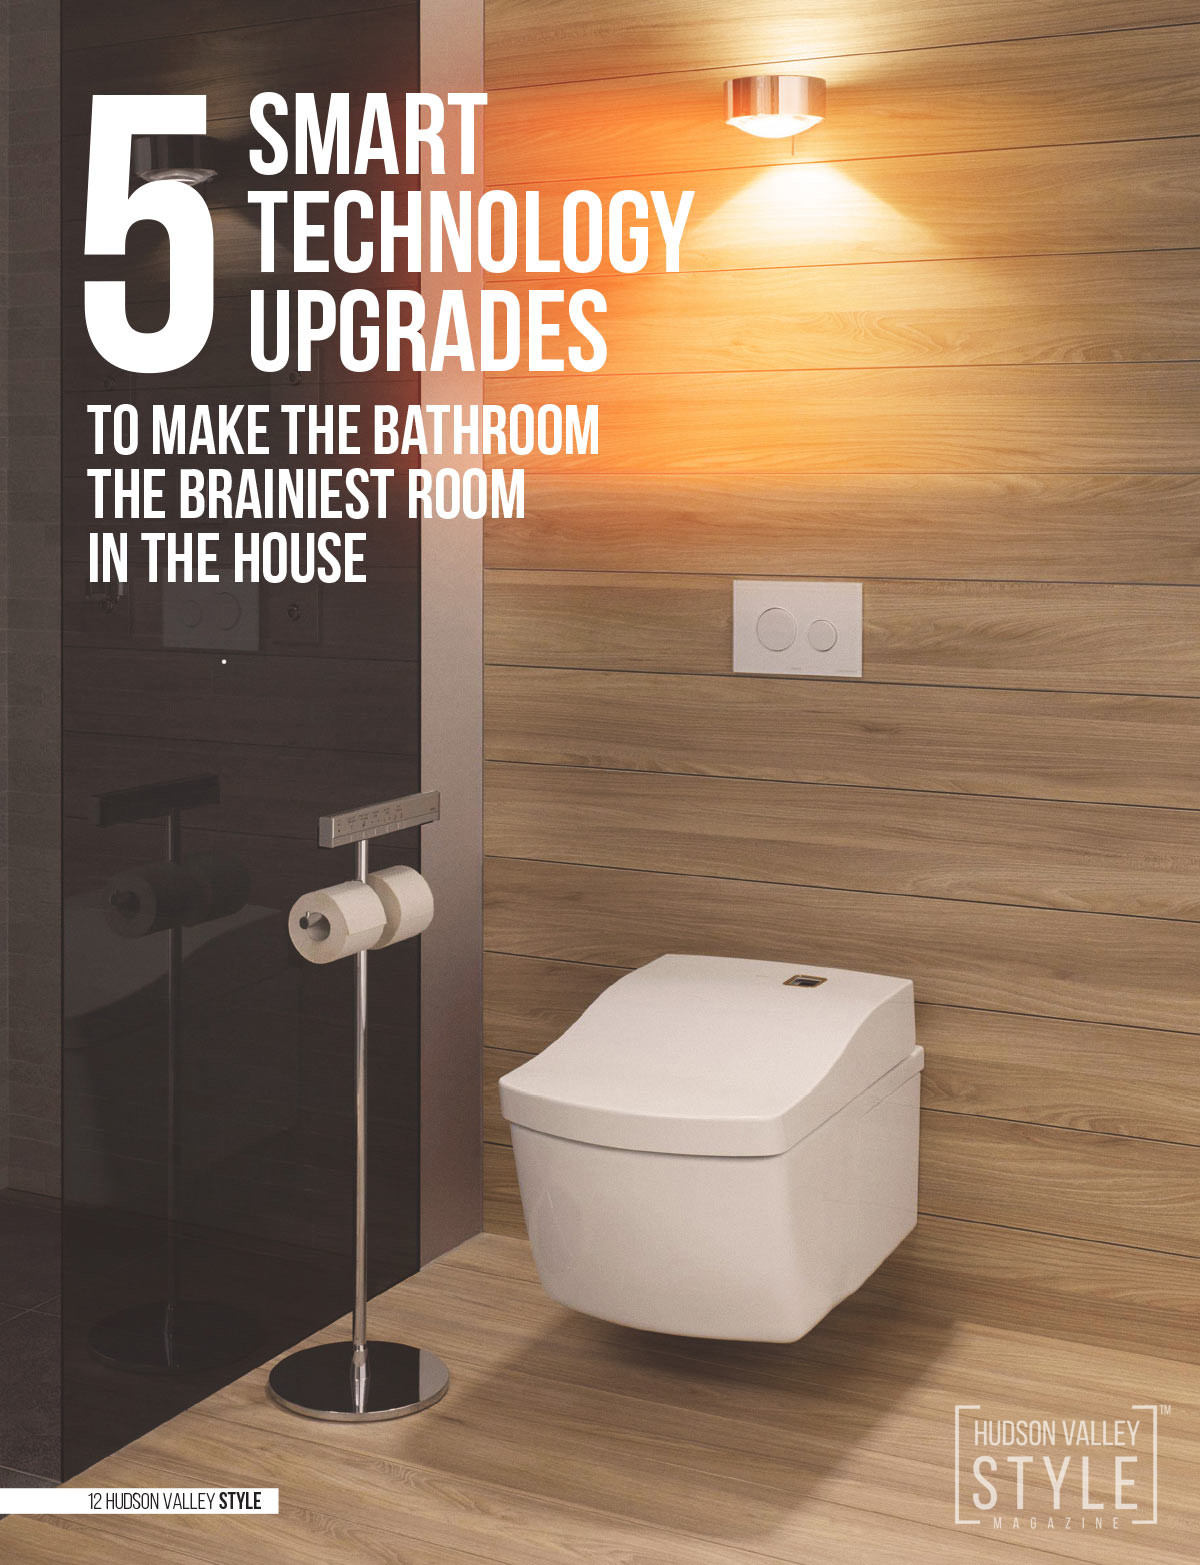 Smart Bathroom Style - Hudson Valley Style Magazine